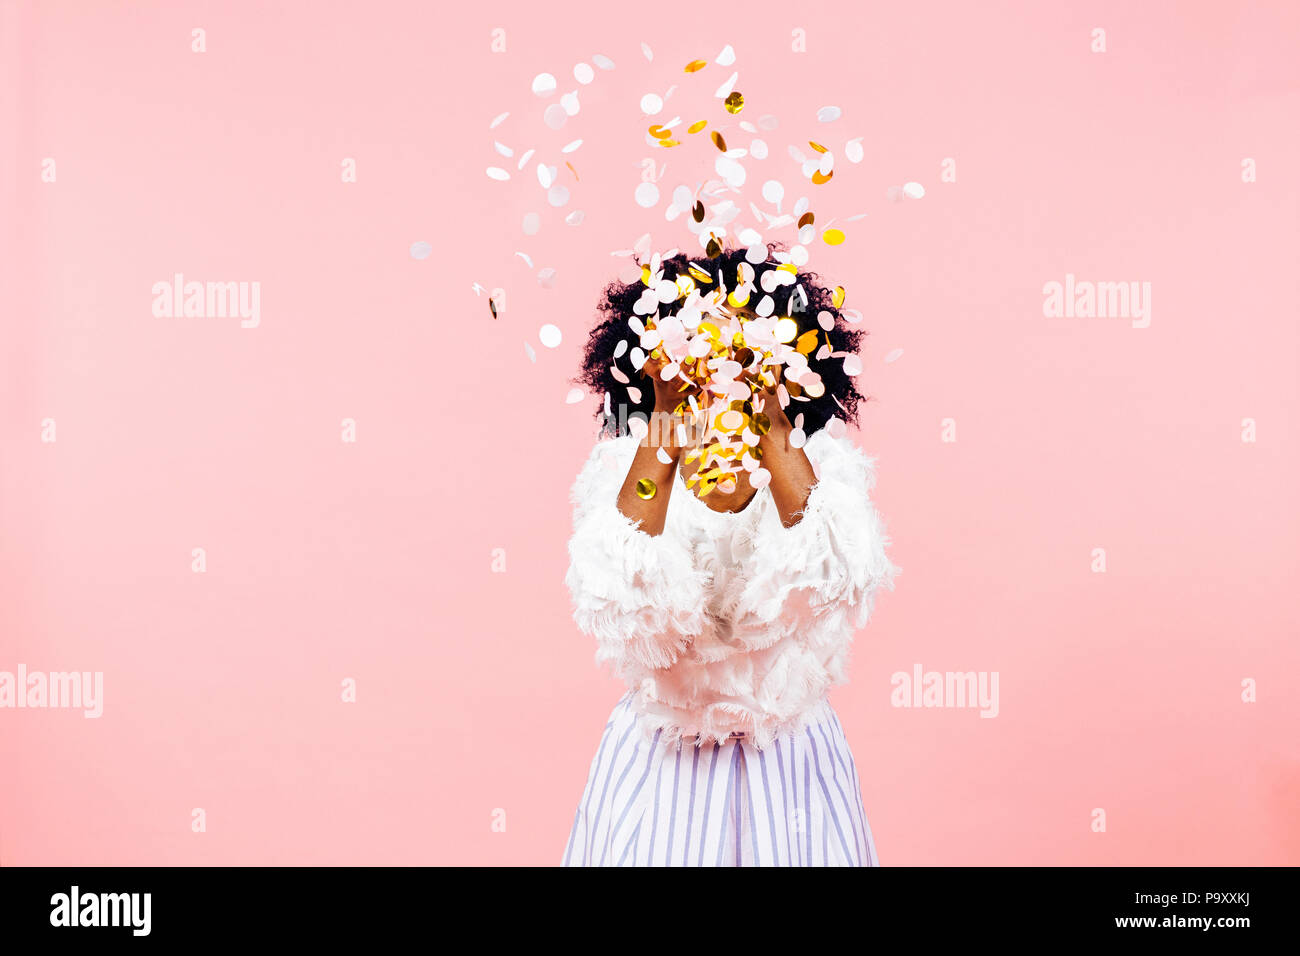 Confetti throw- celebrate happiness - Stock Image